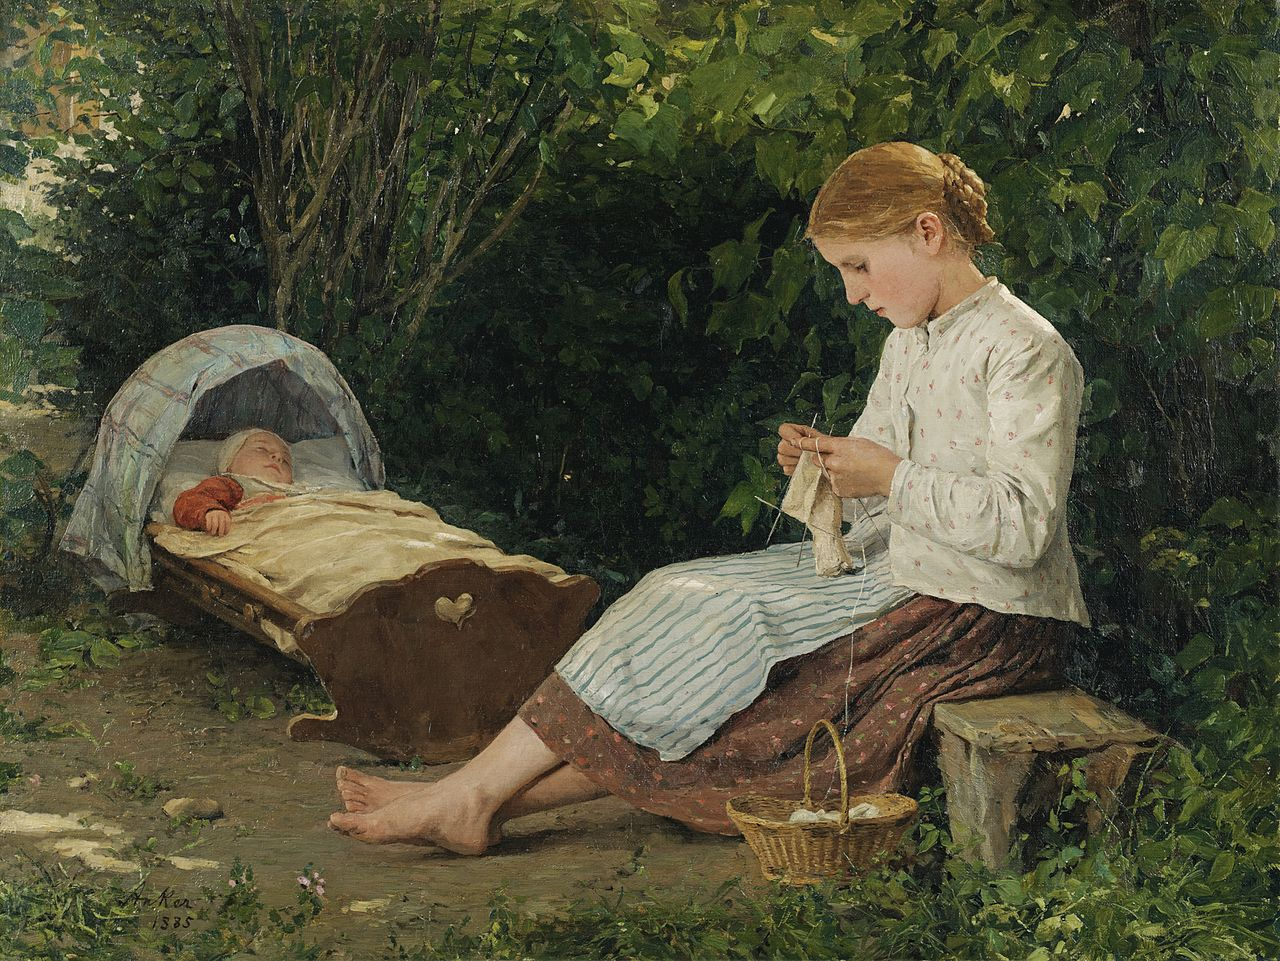 Knitting Girl Watching the Toddler in a Craddle, 1885